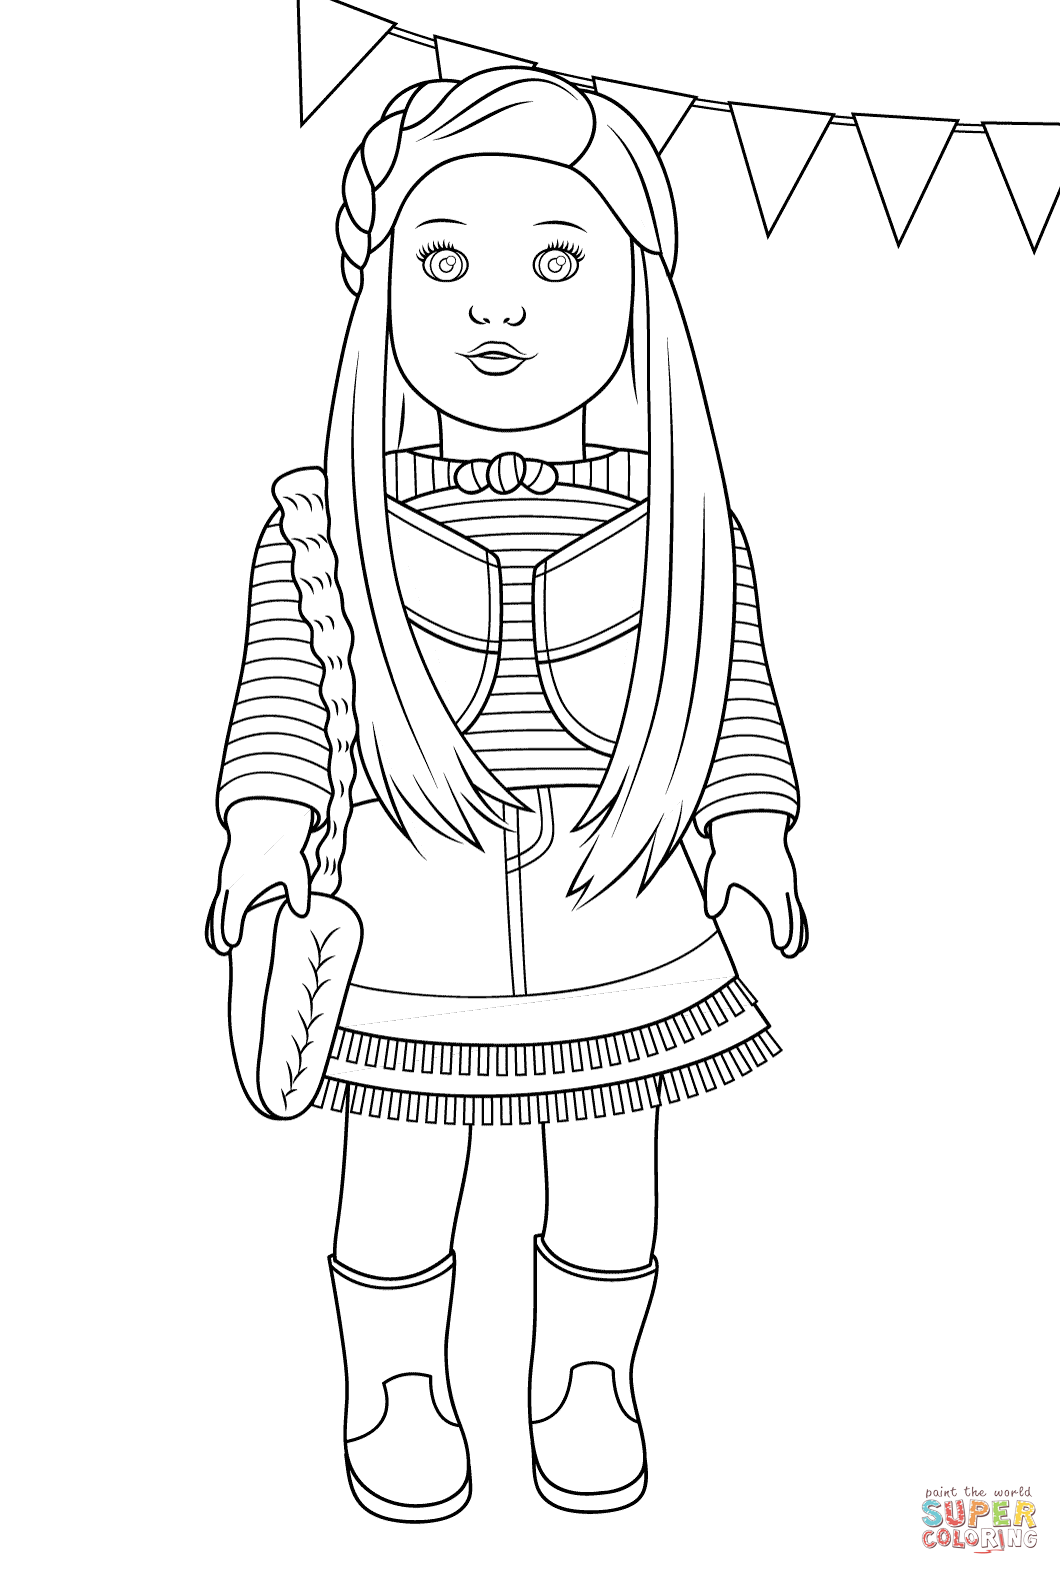 american girl doll coloring pages american girl doll coloring pages american pages girl doll coloring